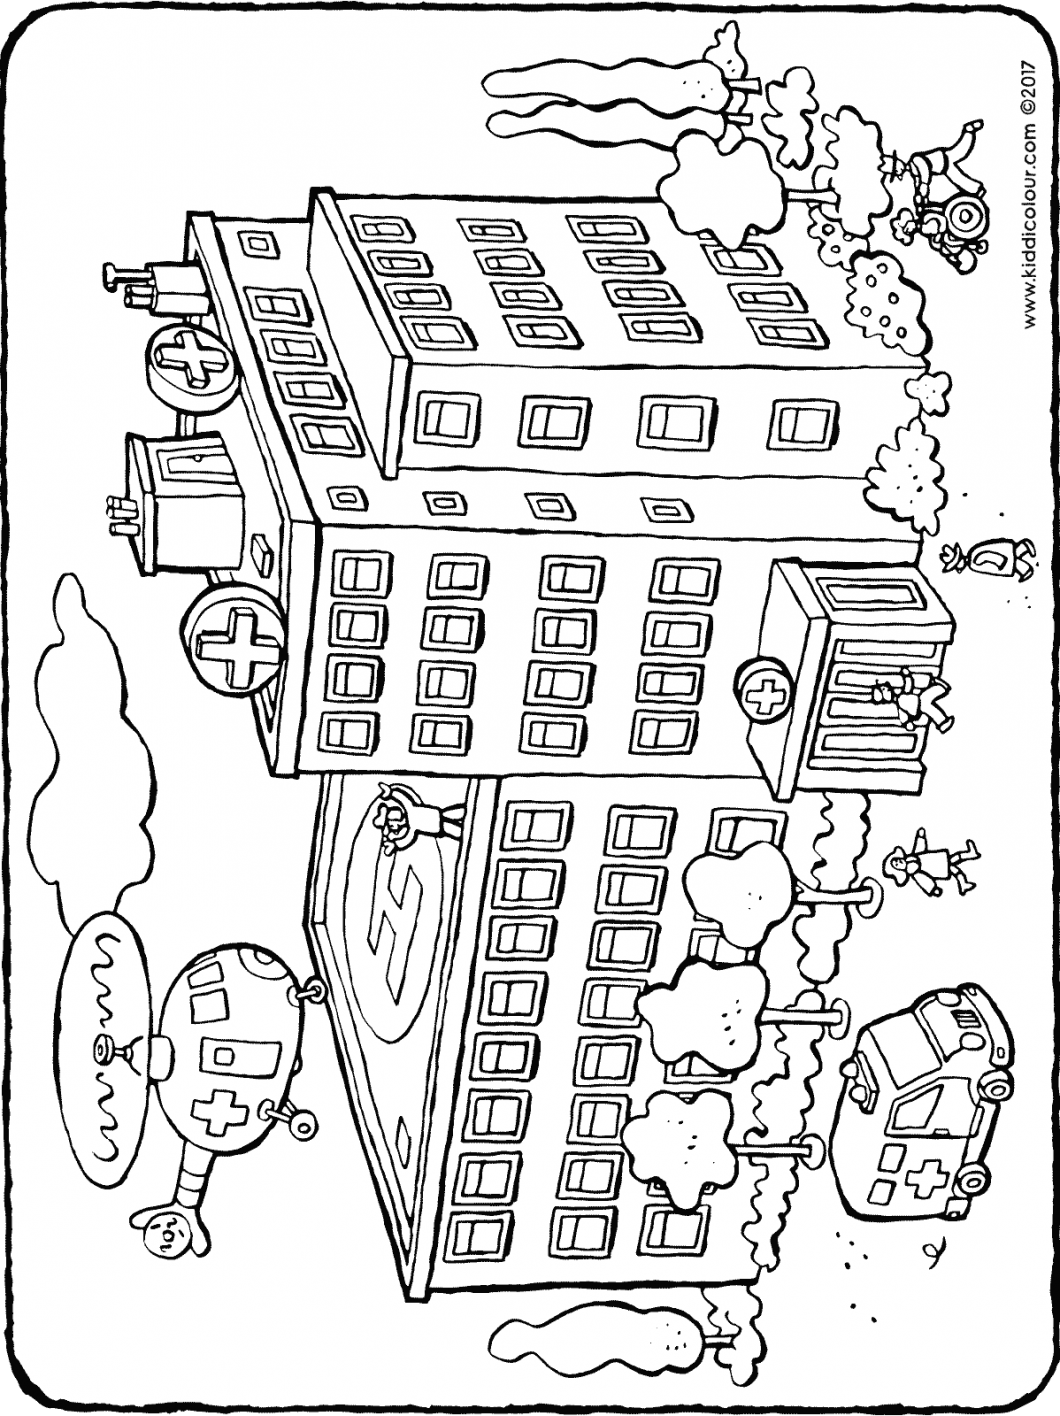 the hospital colouring page drawing picture 01H